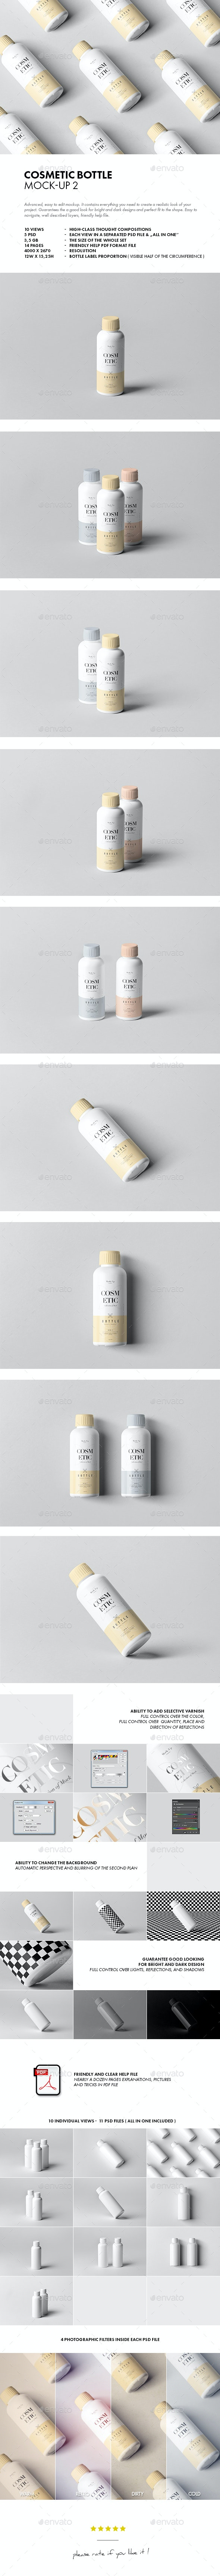 Cosmetic Bottle Mock-up 2 - Beauty Packaging